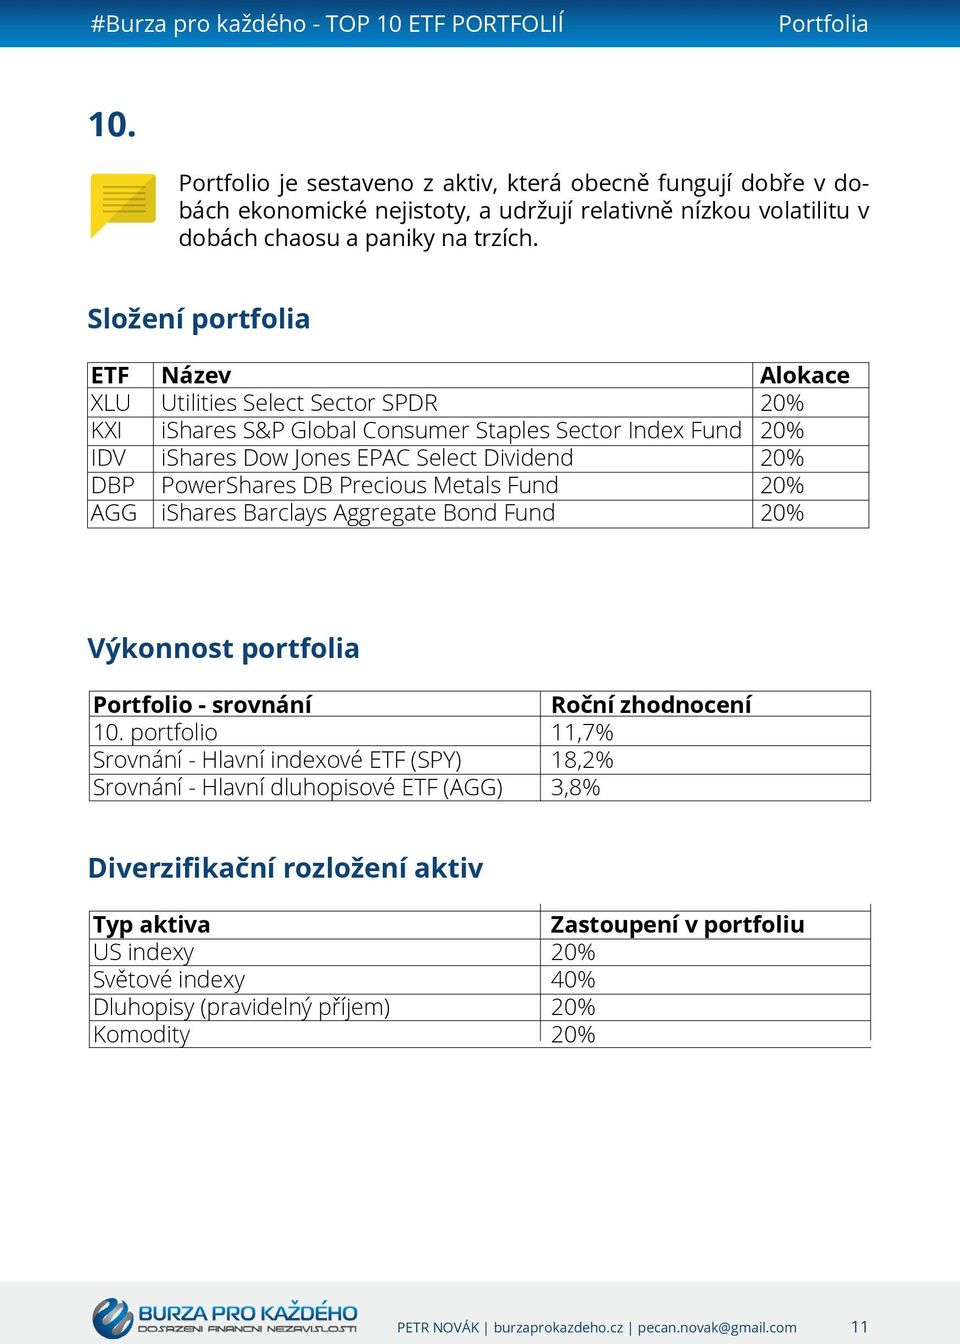 XLU KXI IDV DBP AGG Utilities Select Sector SPDR ishares S&P Global Consumer Staples Sector Index Fund